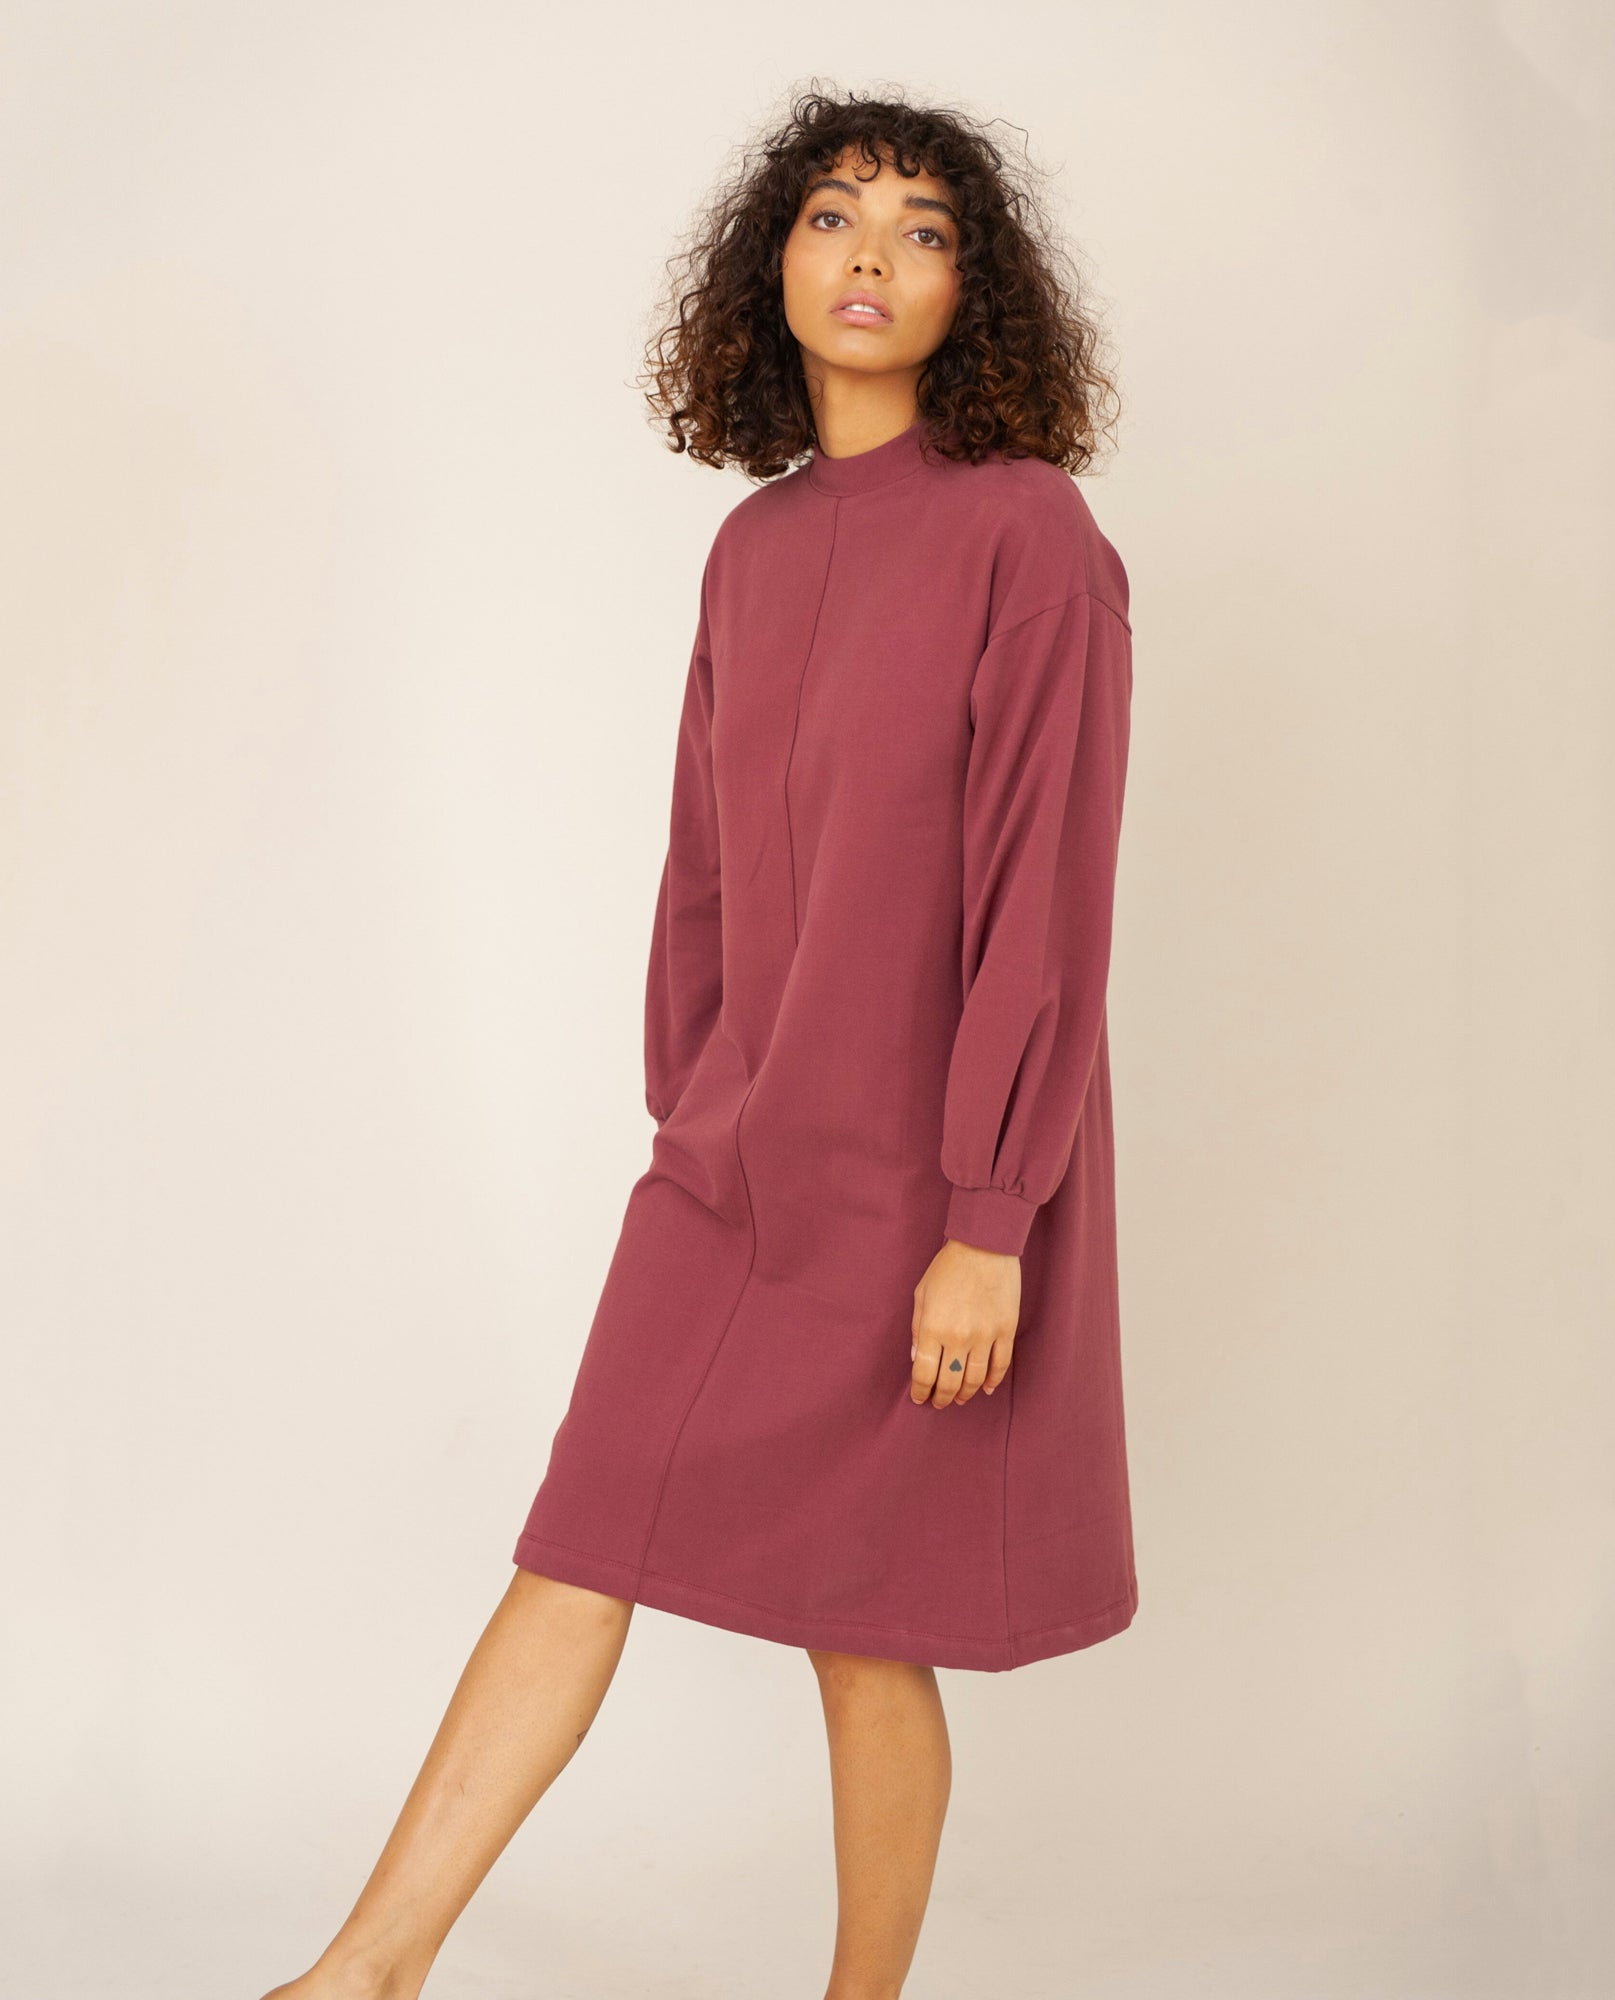 MARTA Organic Cotton Dress In Burgundy